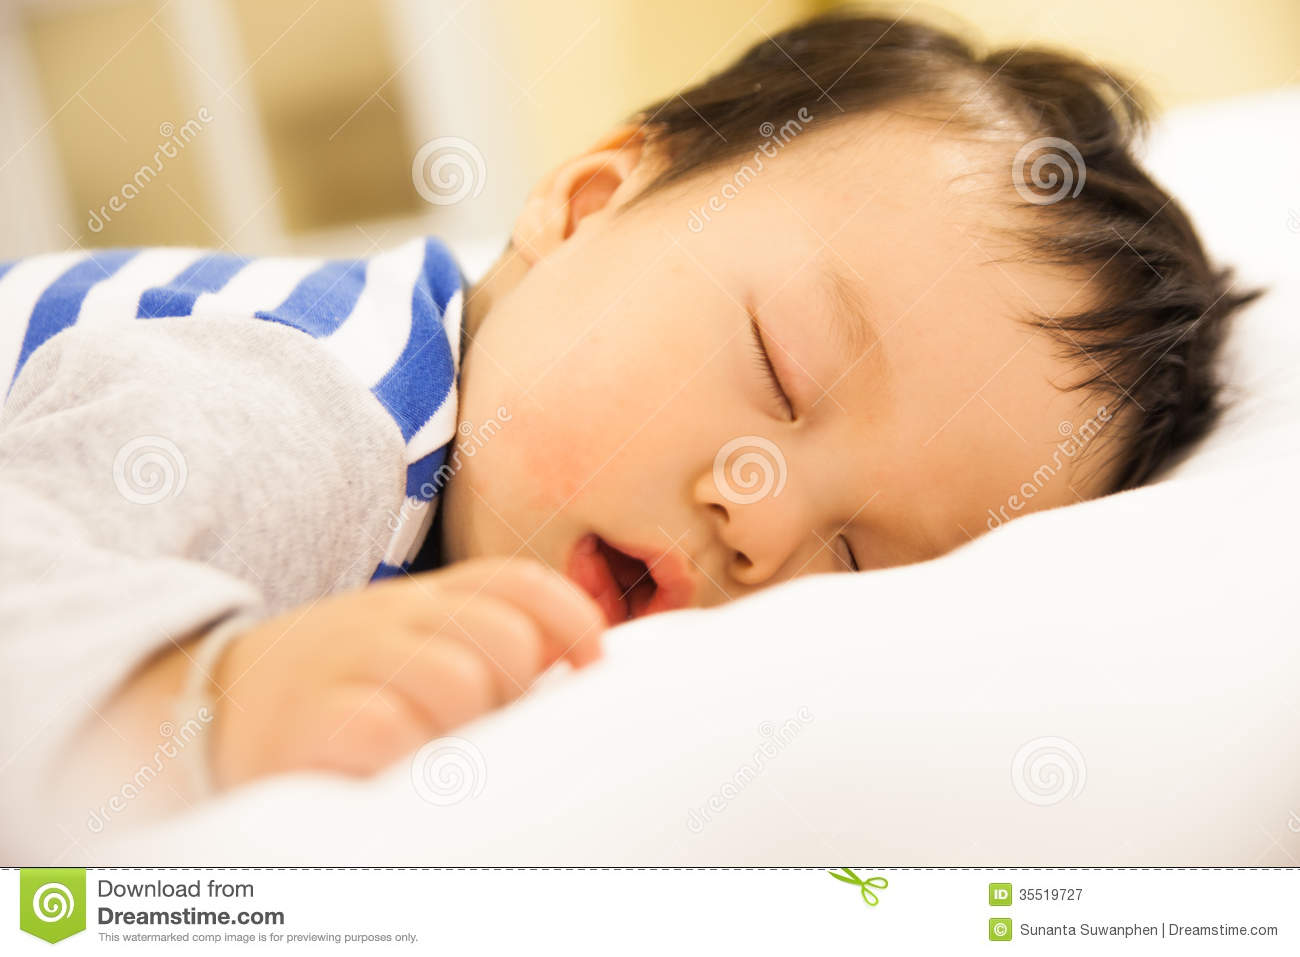 Sleeping Baby Boy On The Bed Stock Image - Image of cute ...